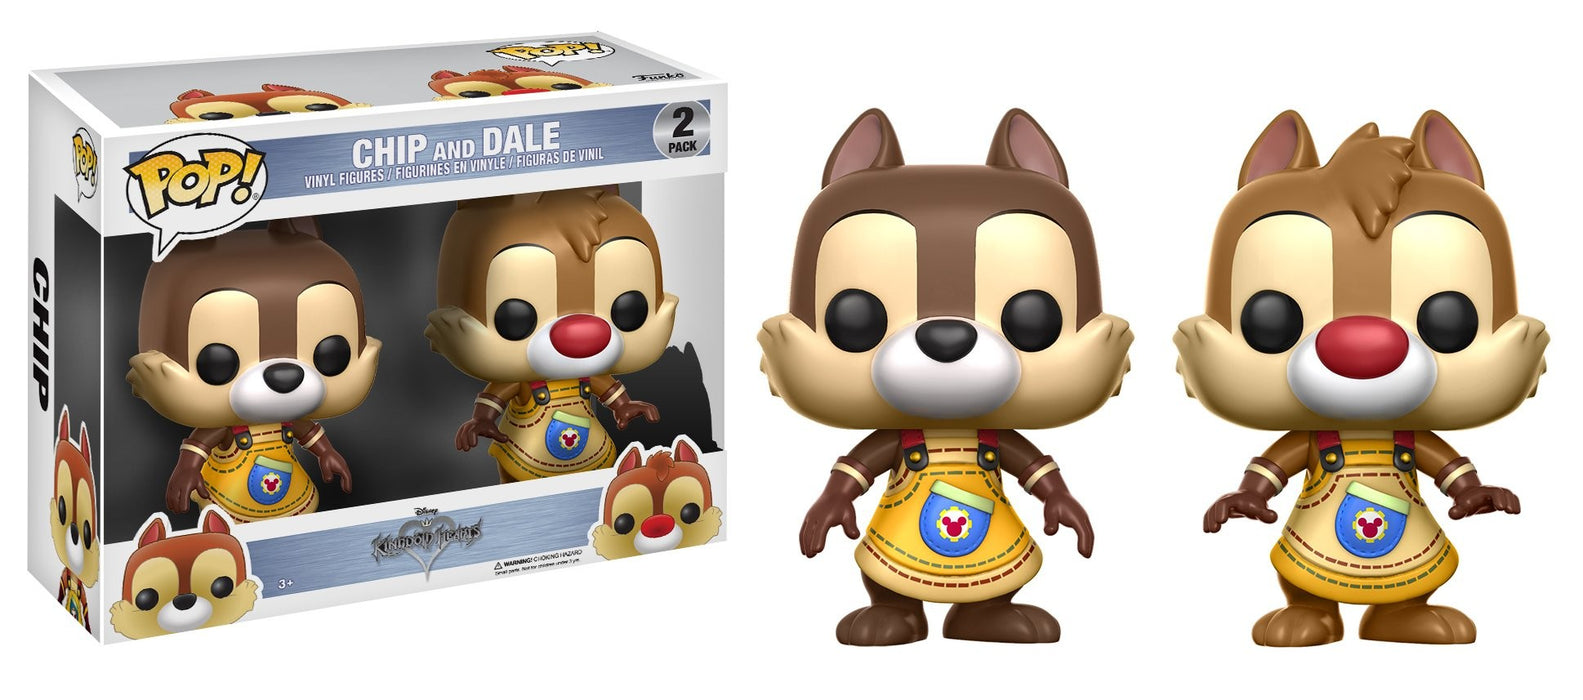 POP! - Kingdom Hearts - Chip and Dale